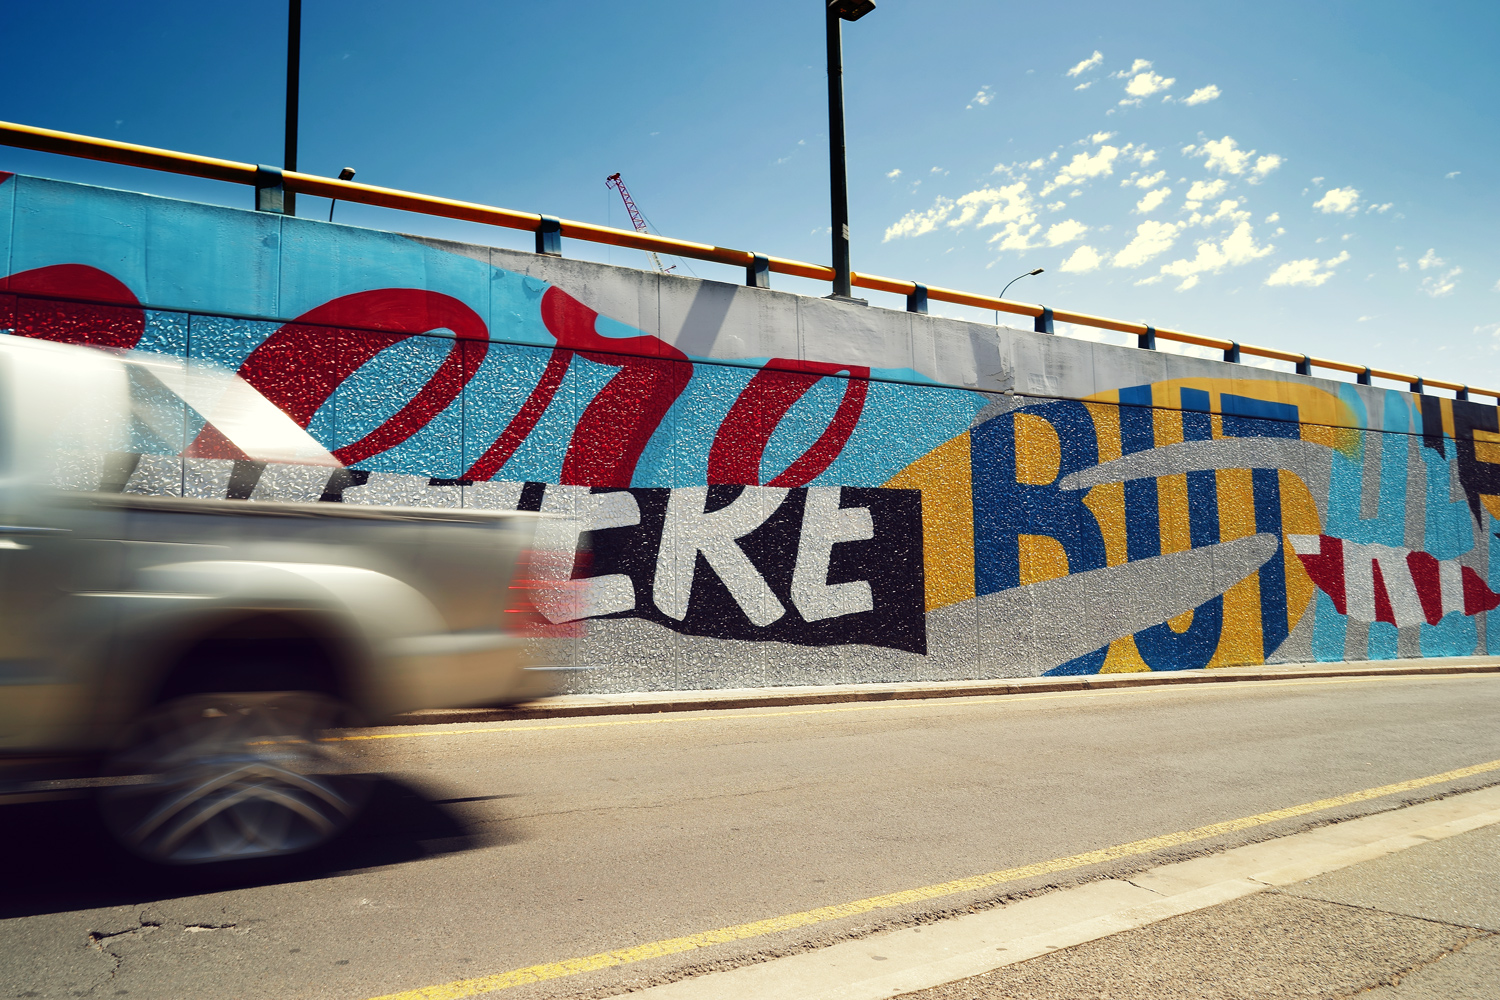 'Going Nowhere But Here' Mural. 70meters, Aerosol & Acrylic. Adelaide 2015